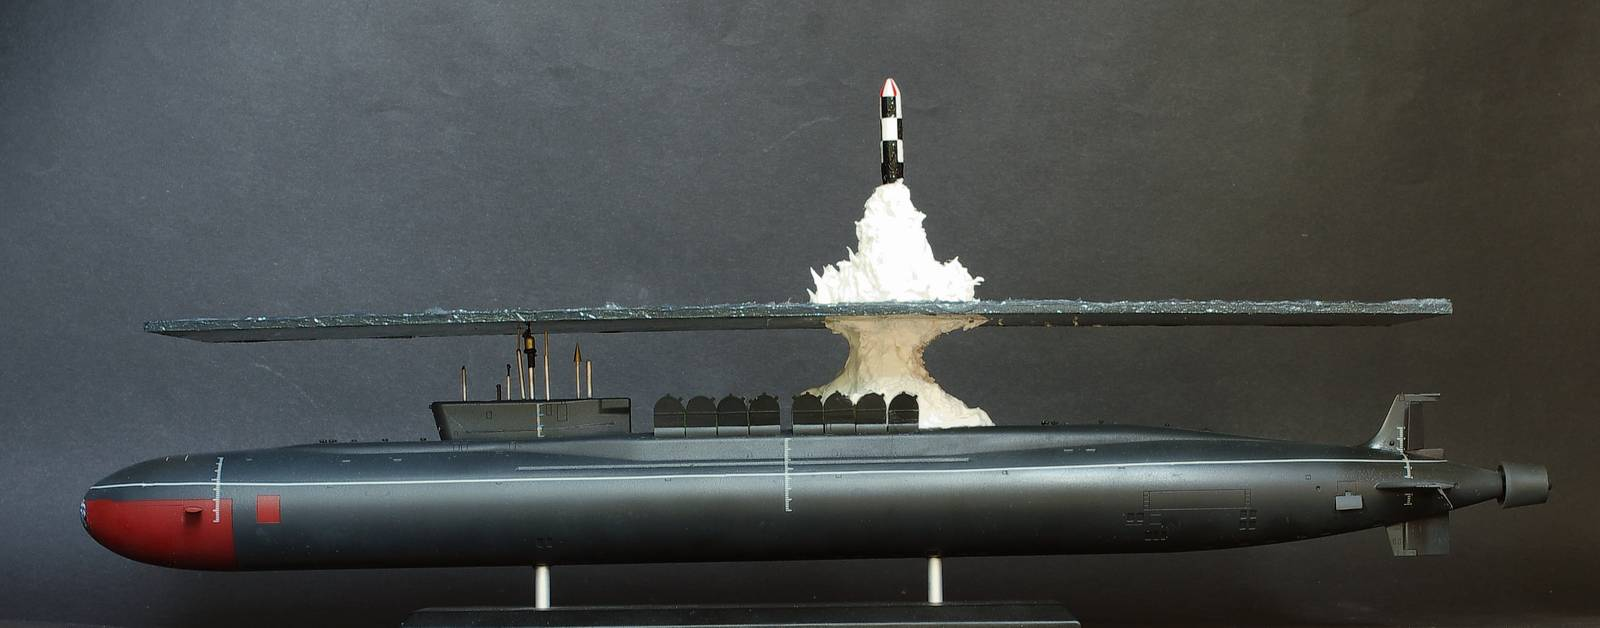 Great scale model of Russian submarine Yury Dolgorukiy (K-535) - 24